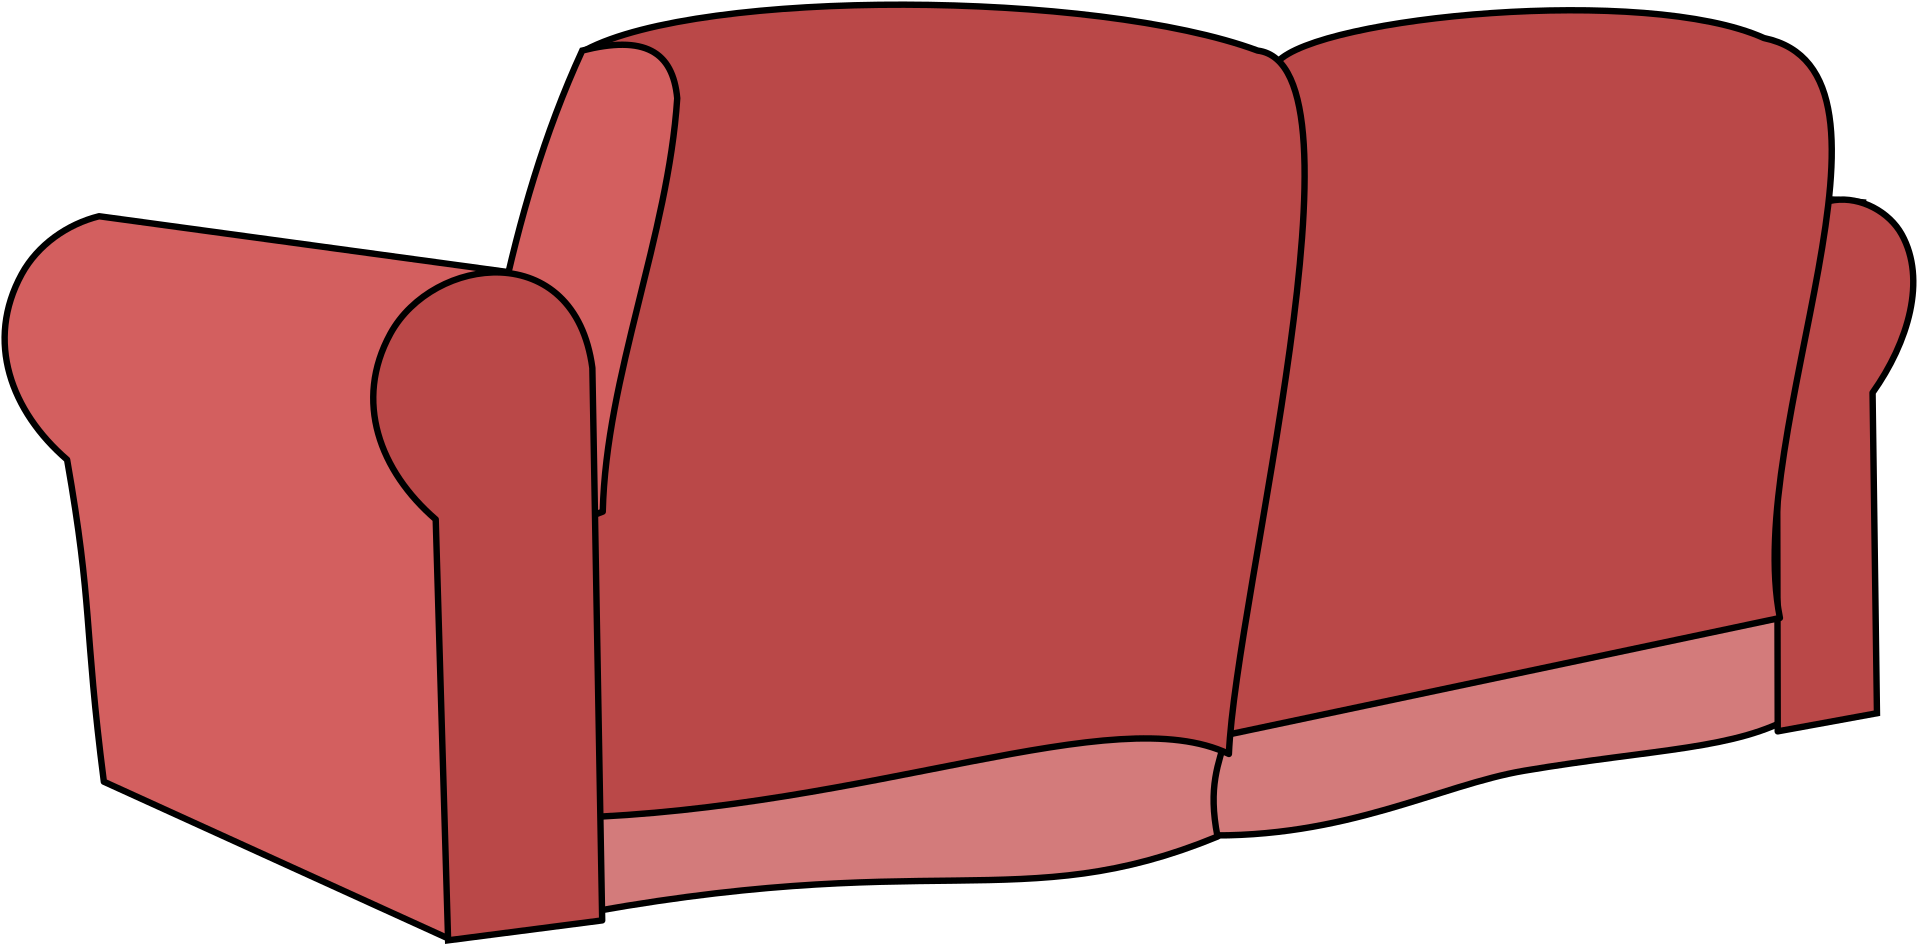 Couch clipart bedroom. Kisspng chair living room